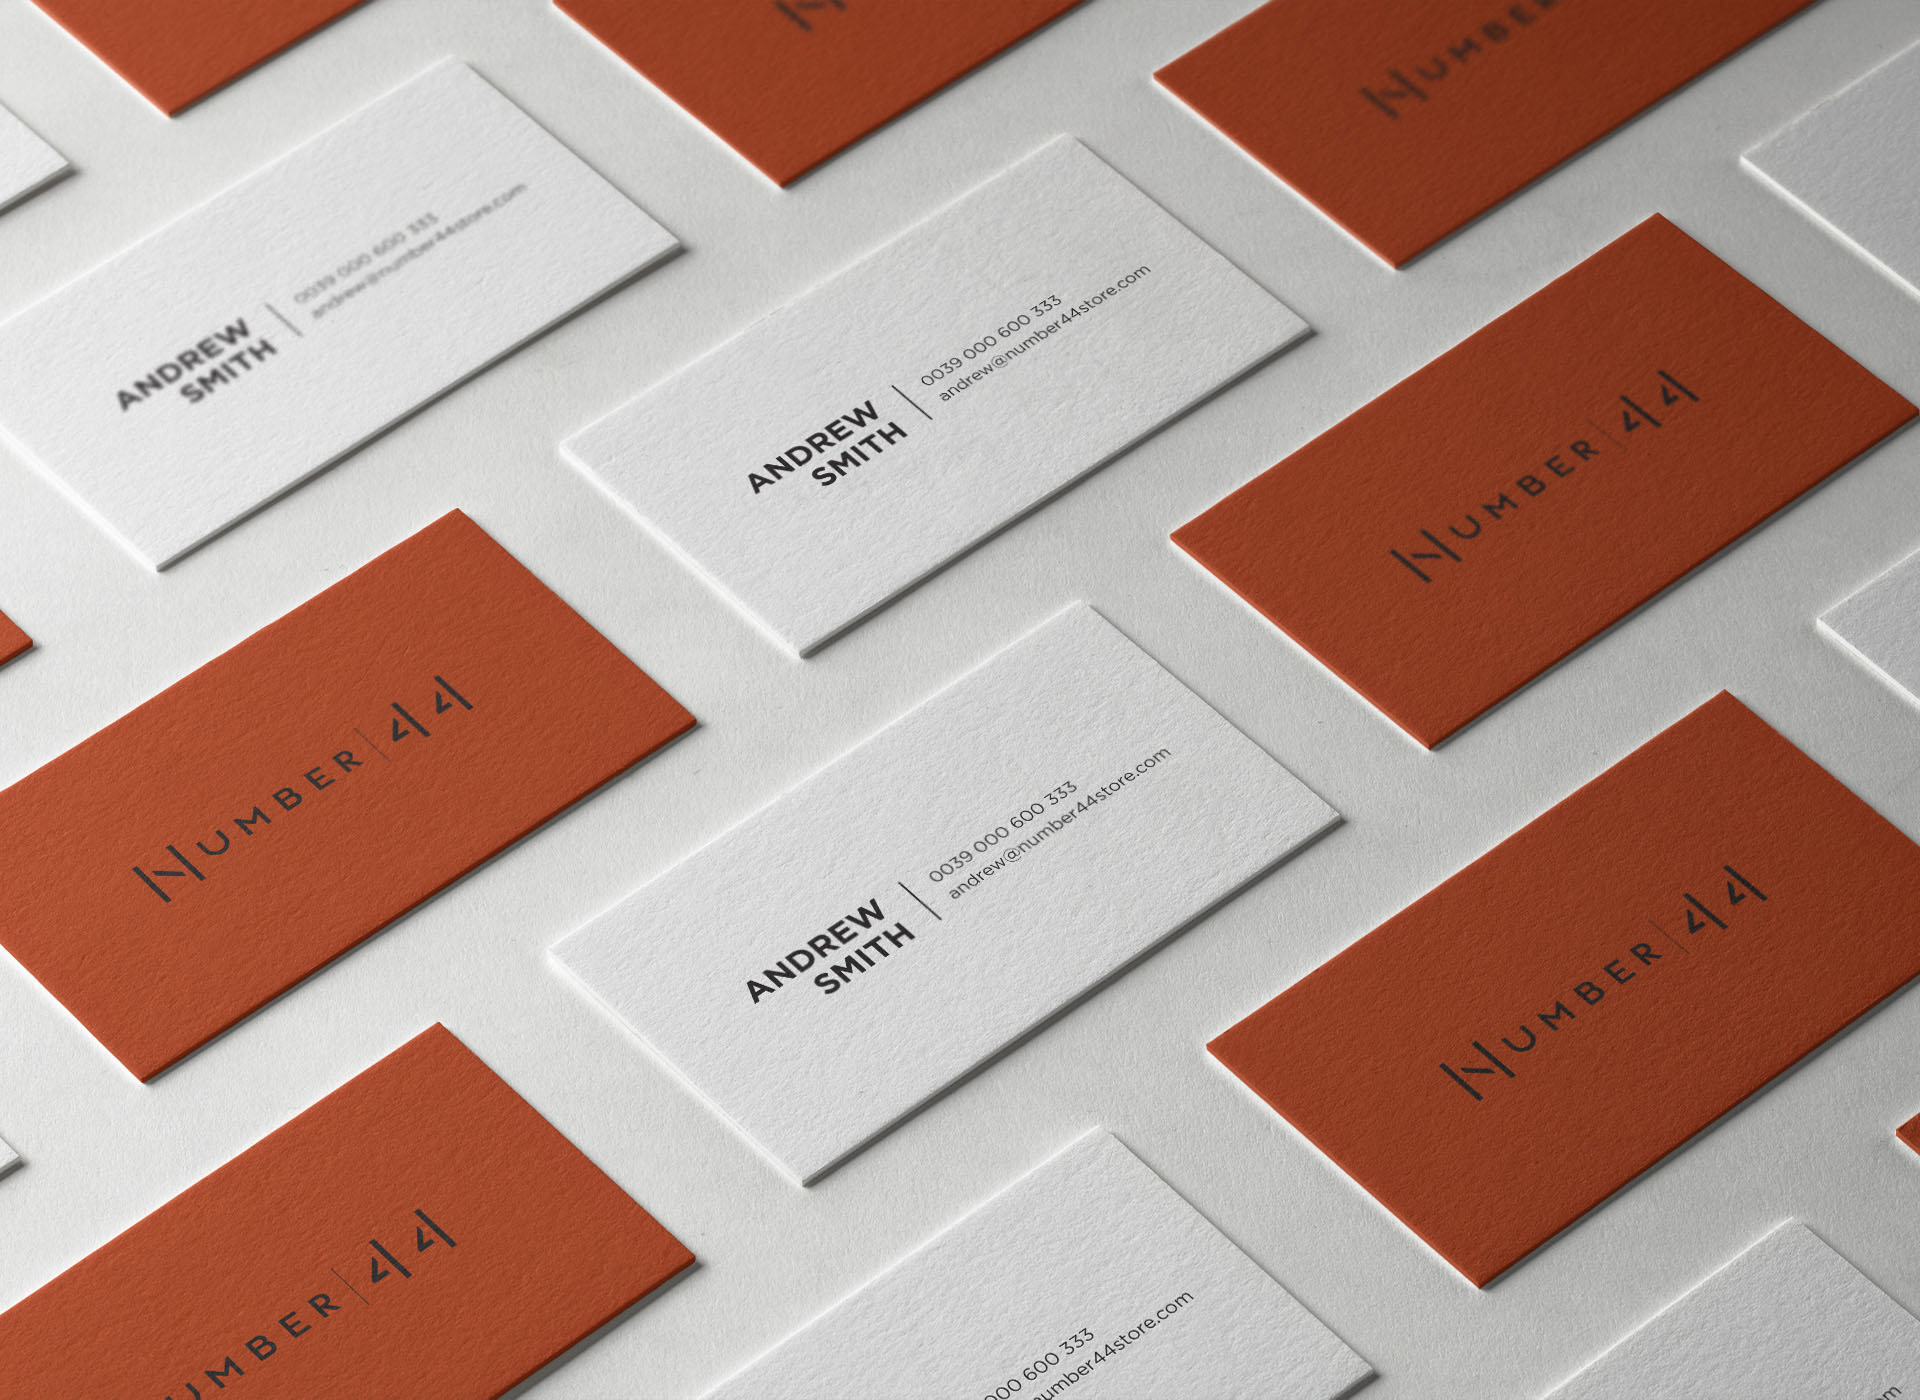 NO44 portofoliu inoveo business cards